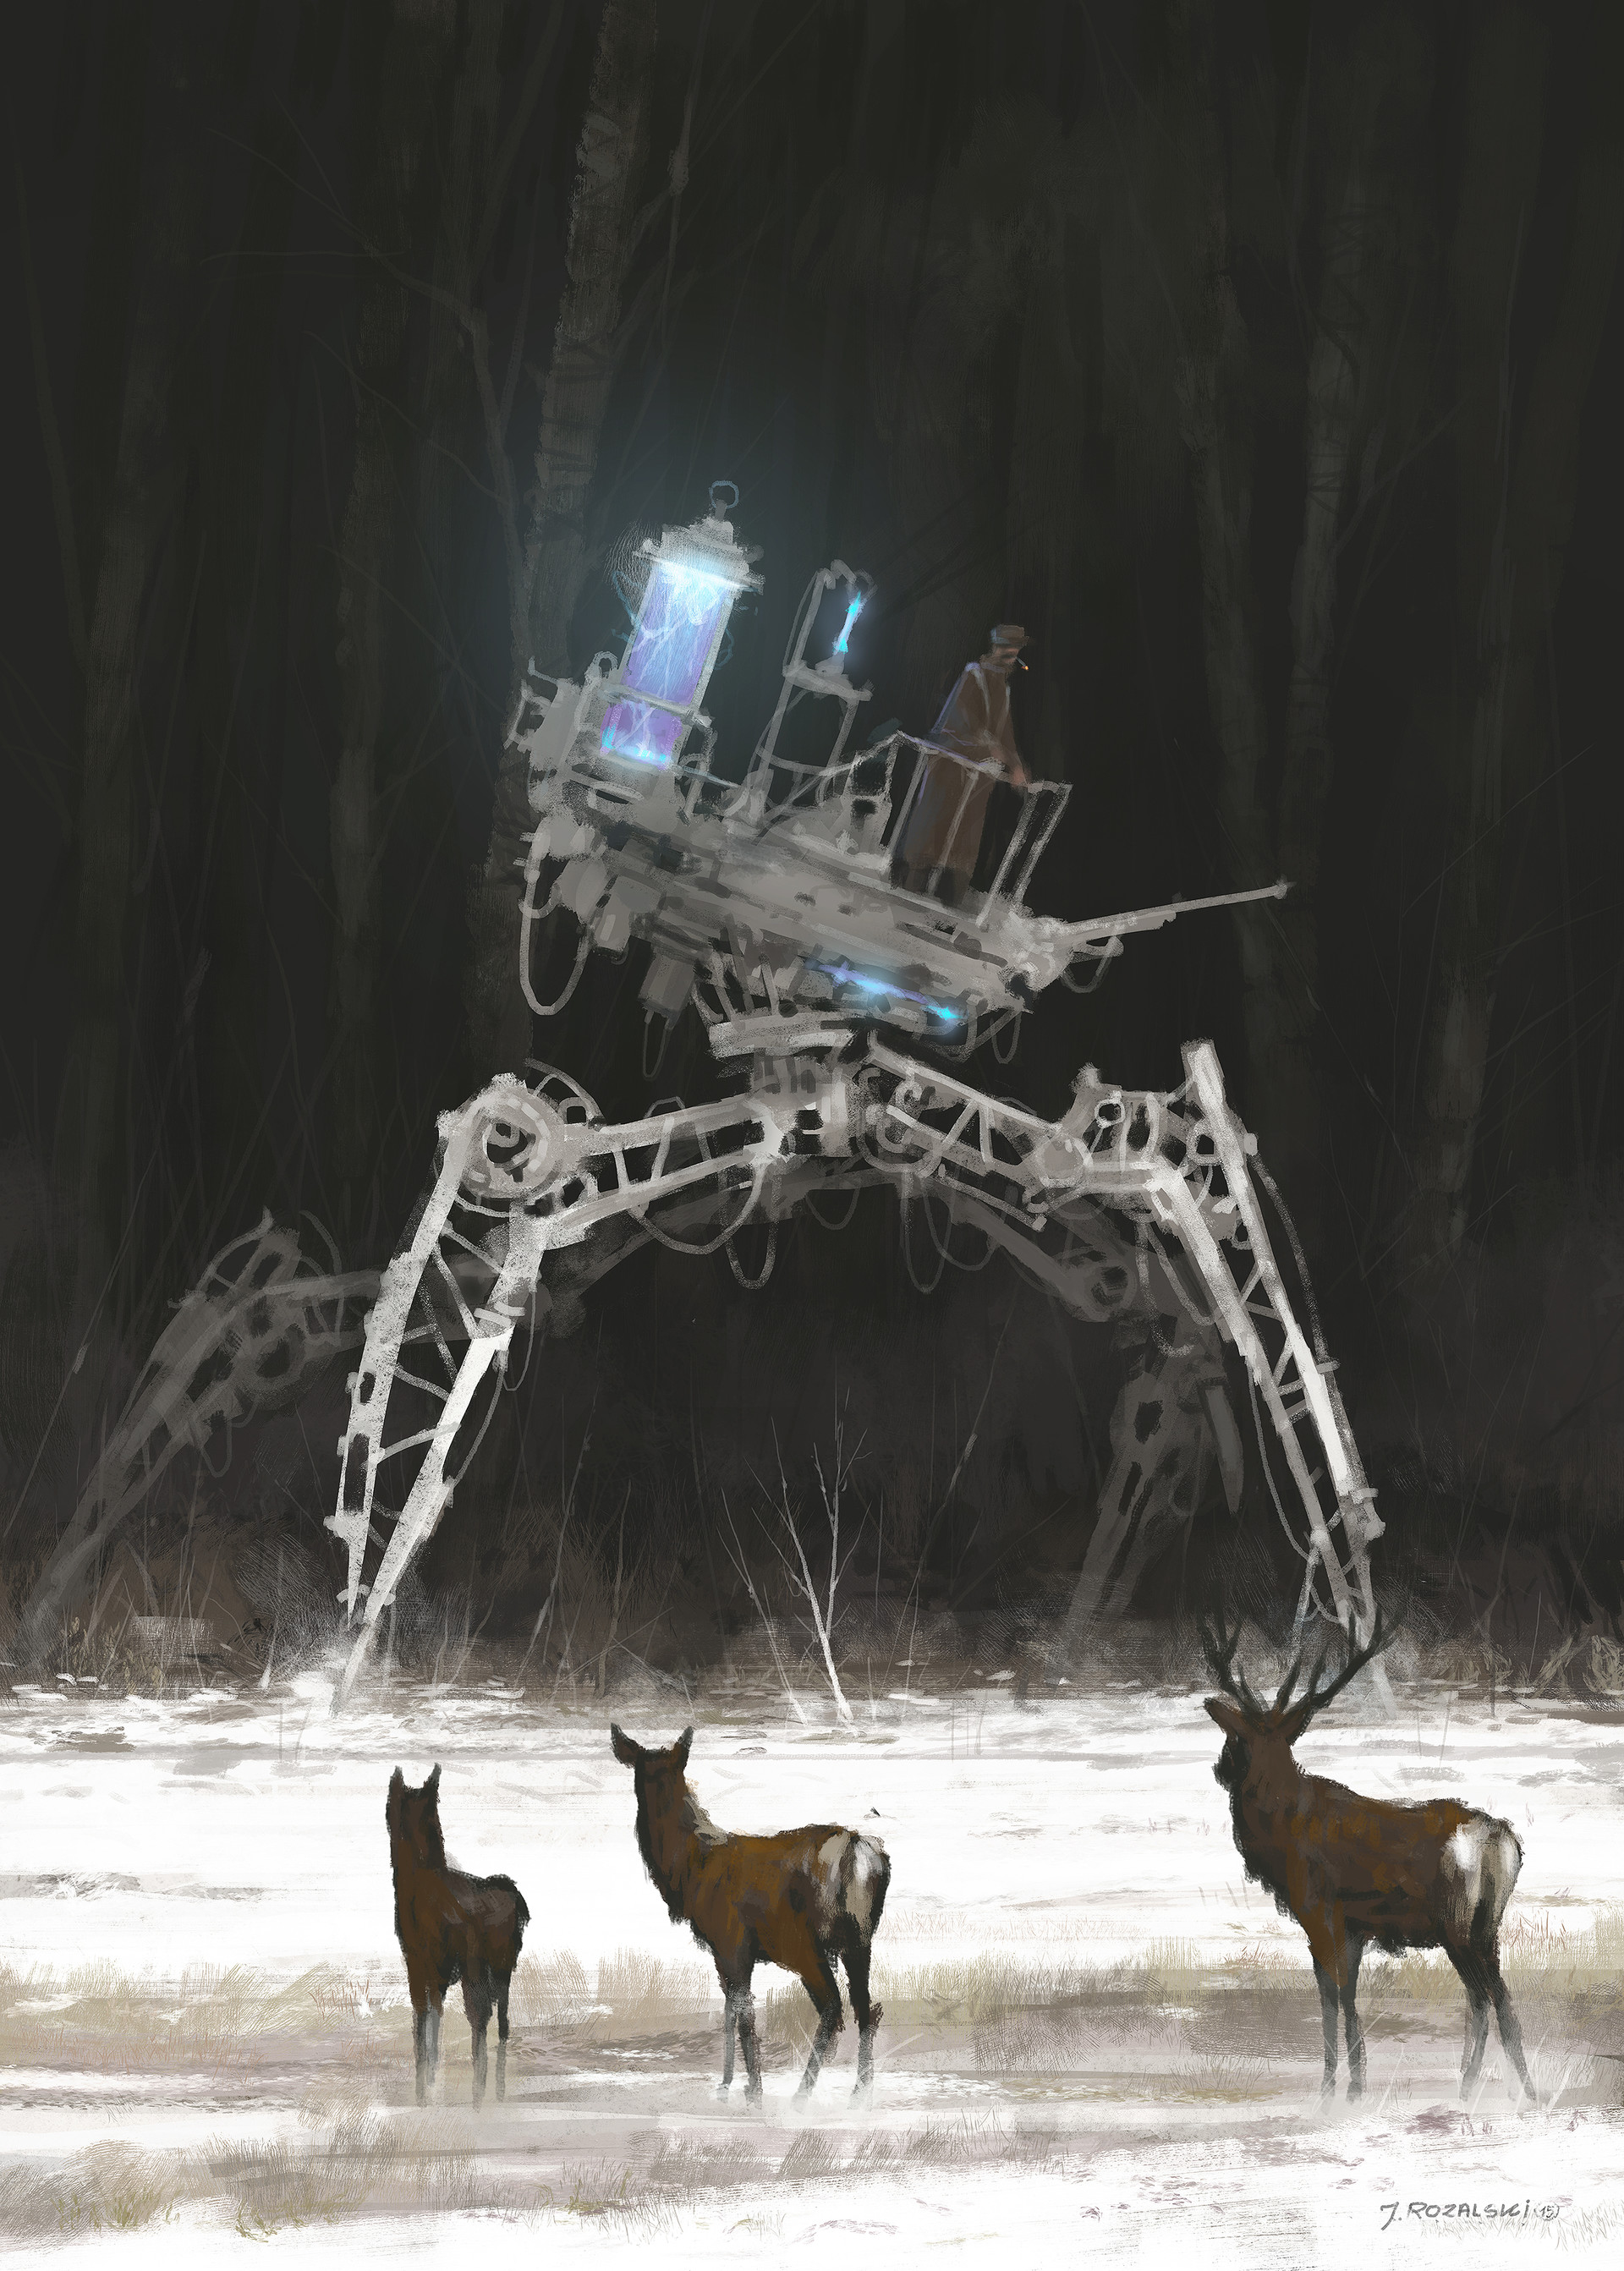 Jakub rozalski factory illustration 12 darkreacruit2s